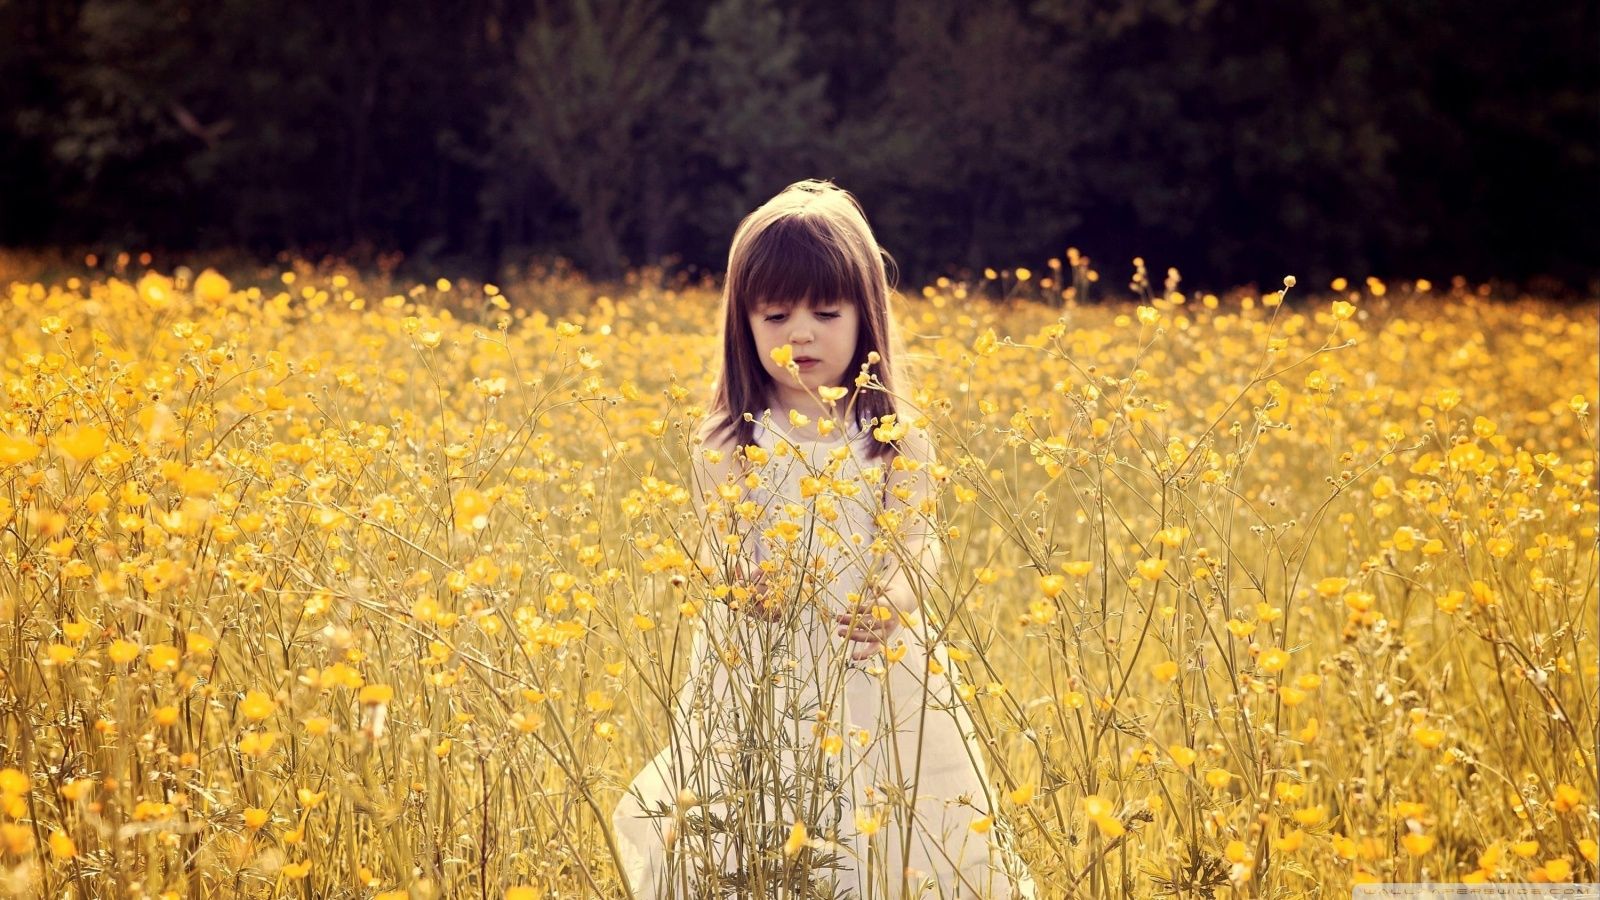 Hd 16 - - Little Girl In Flower Field , HD Wallpaper & Backgrounds